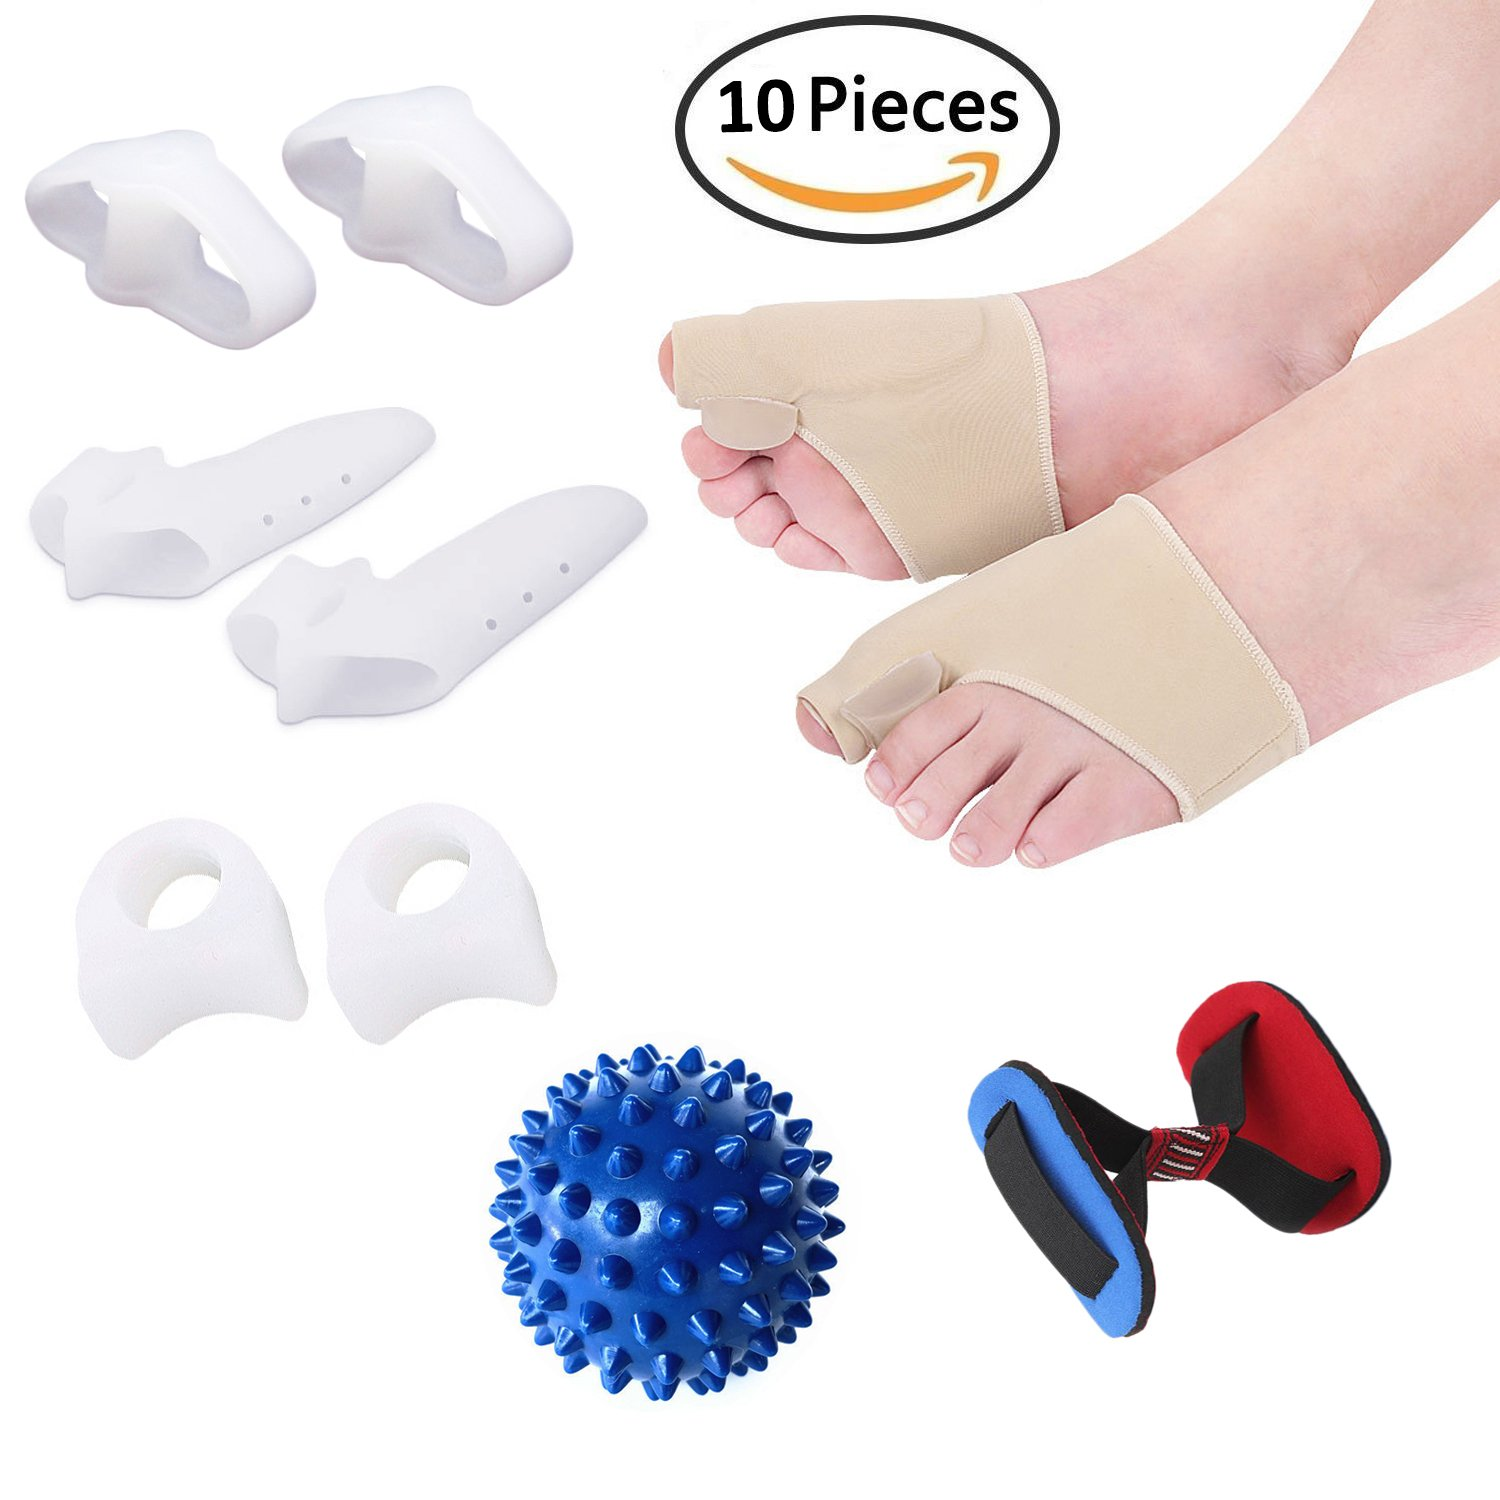 Bunion Corrector Sleeves Kit Protector Soft Gel Pads Toe Splint Separators Spacers Straightener Foot Massage Ball Pull Strap